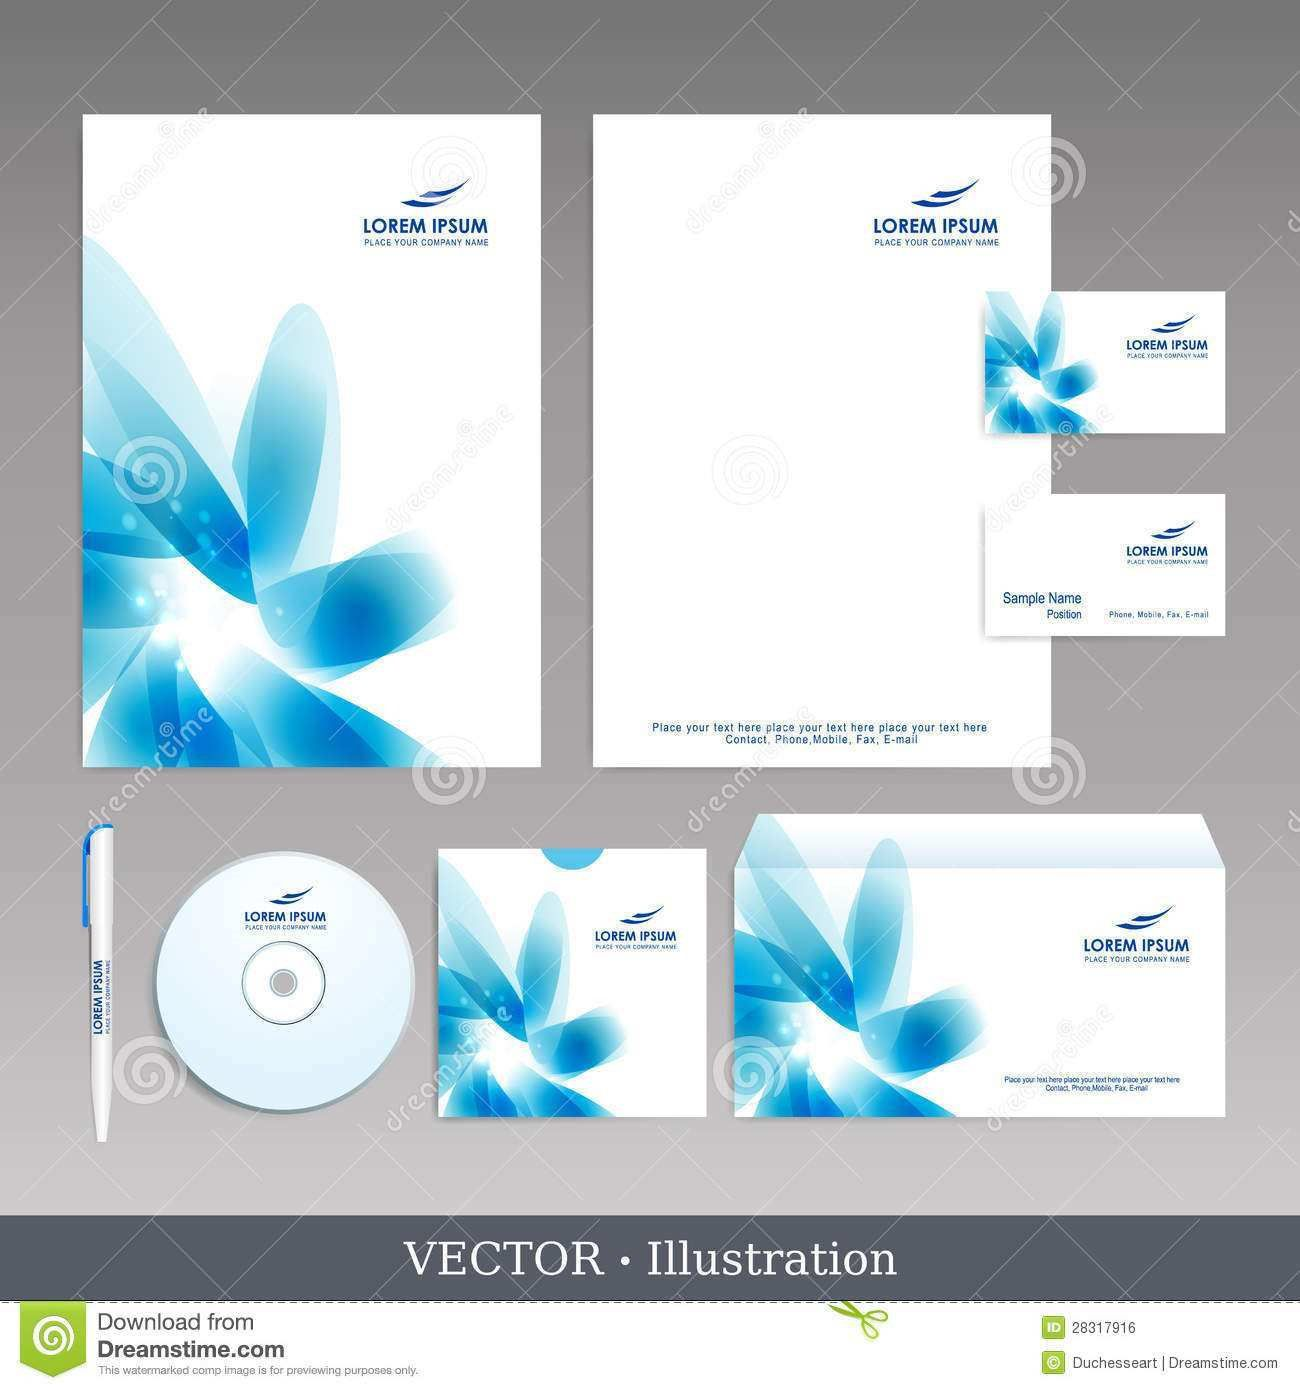 001 Stirring Id Card Template Free Download Photo  Design Photoshop Identity Student WordFull